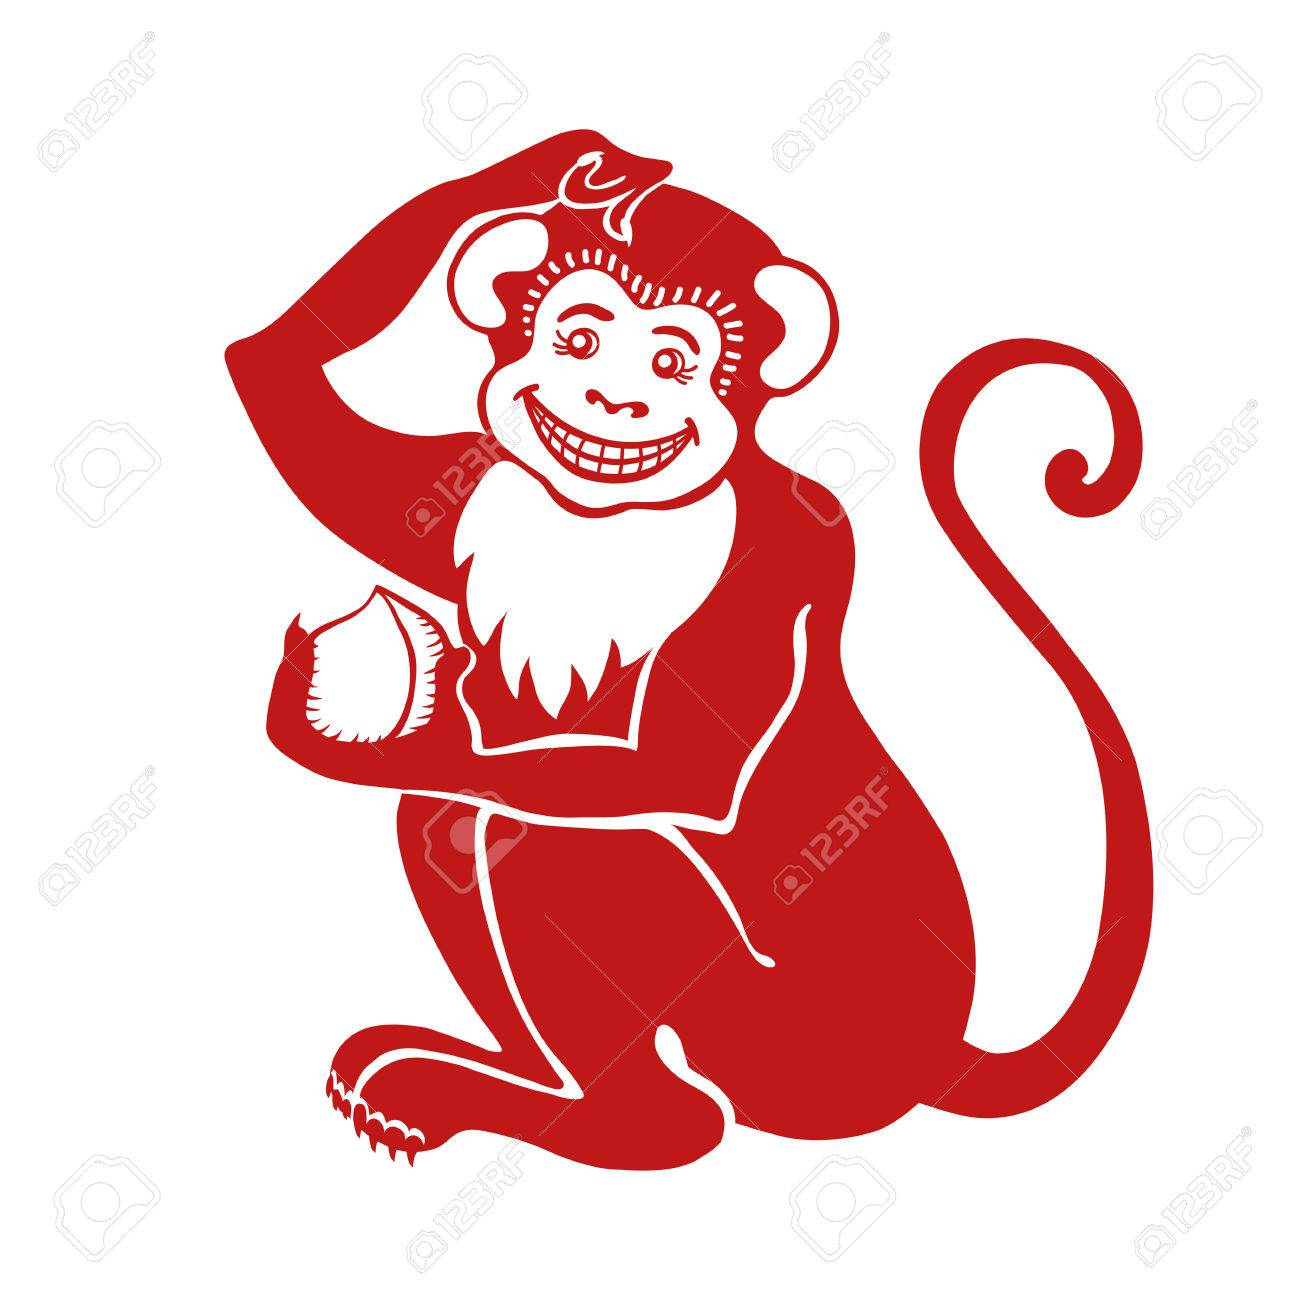 red monkeychinese zodiactranslation symbol of 2016 year signiconisolated